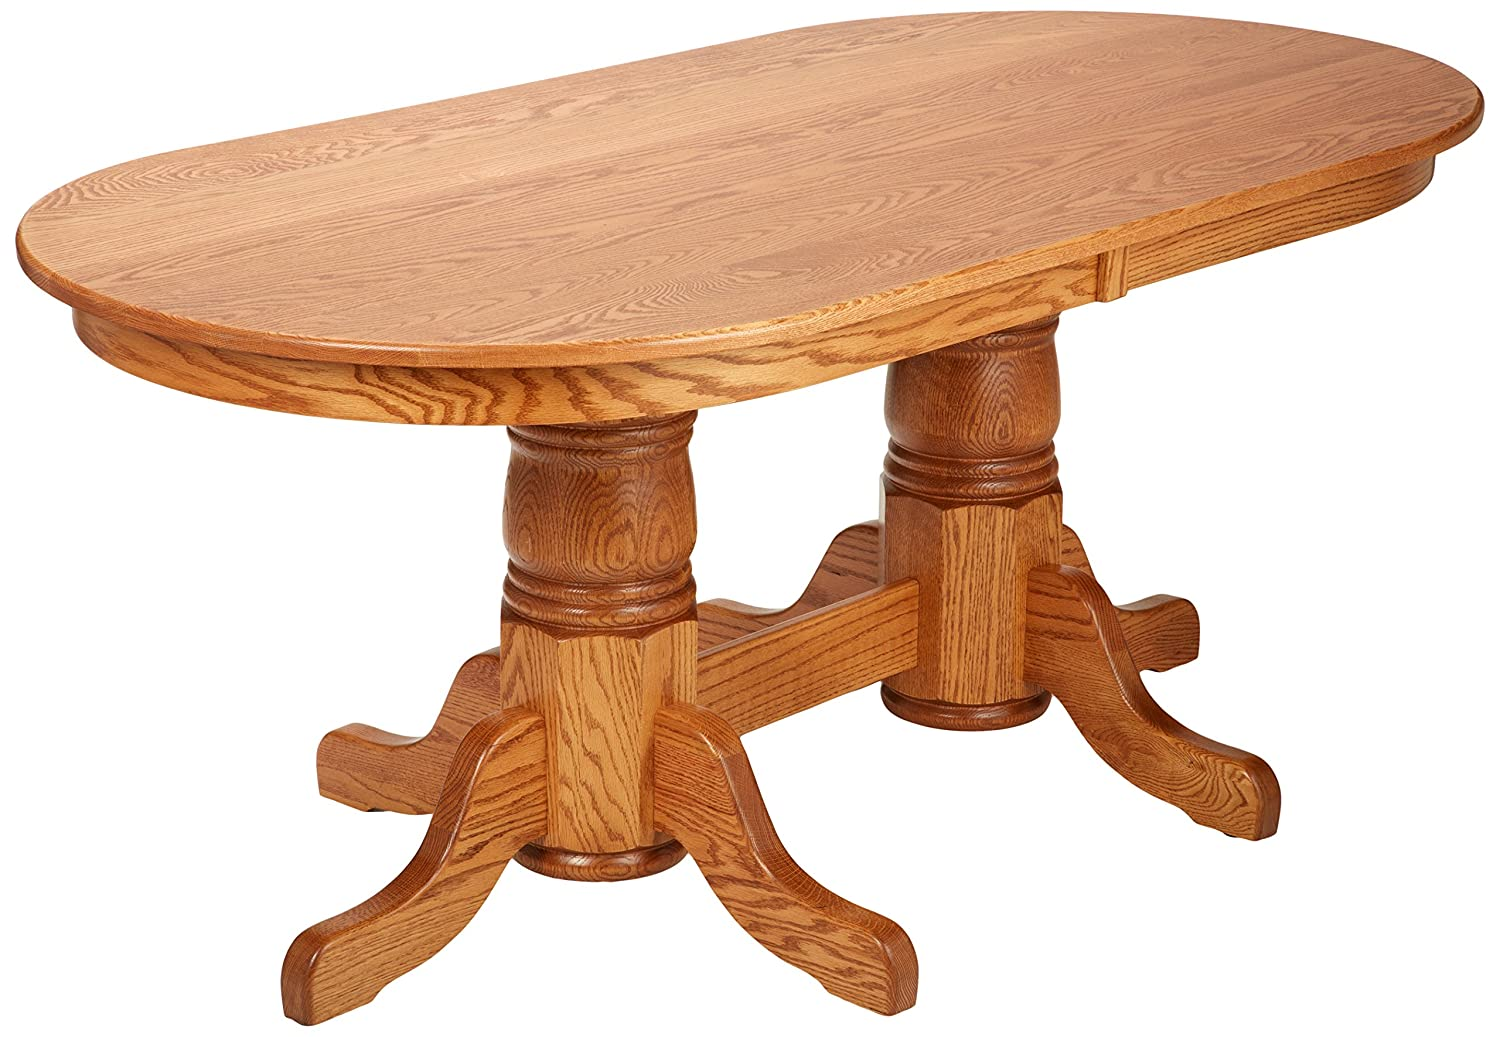 Solid Oak Dining Tables - Top Dining Tables Review